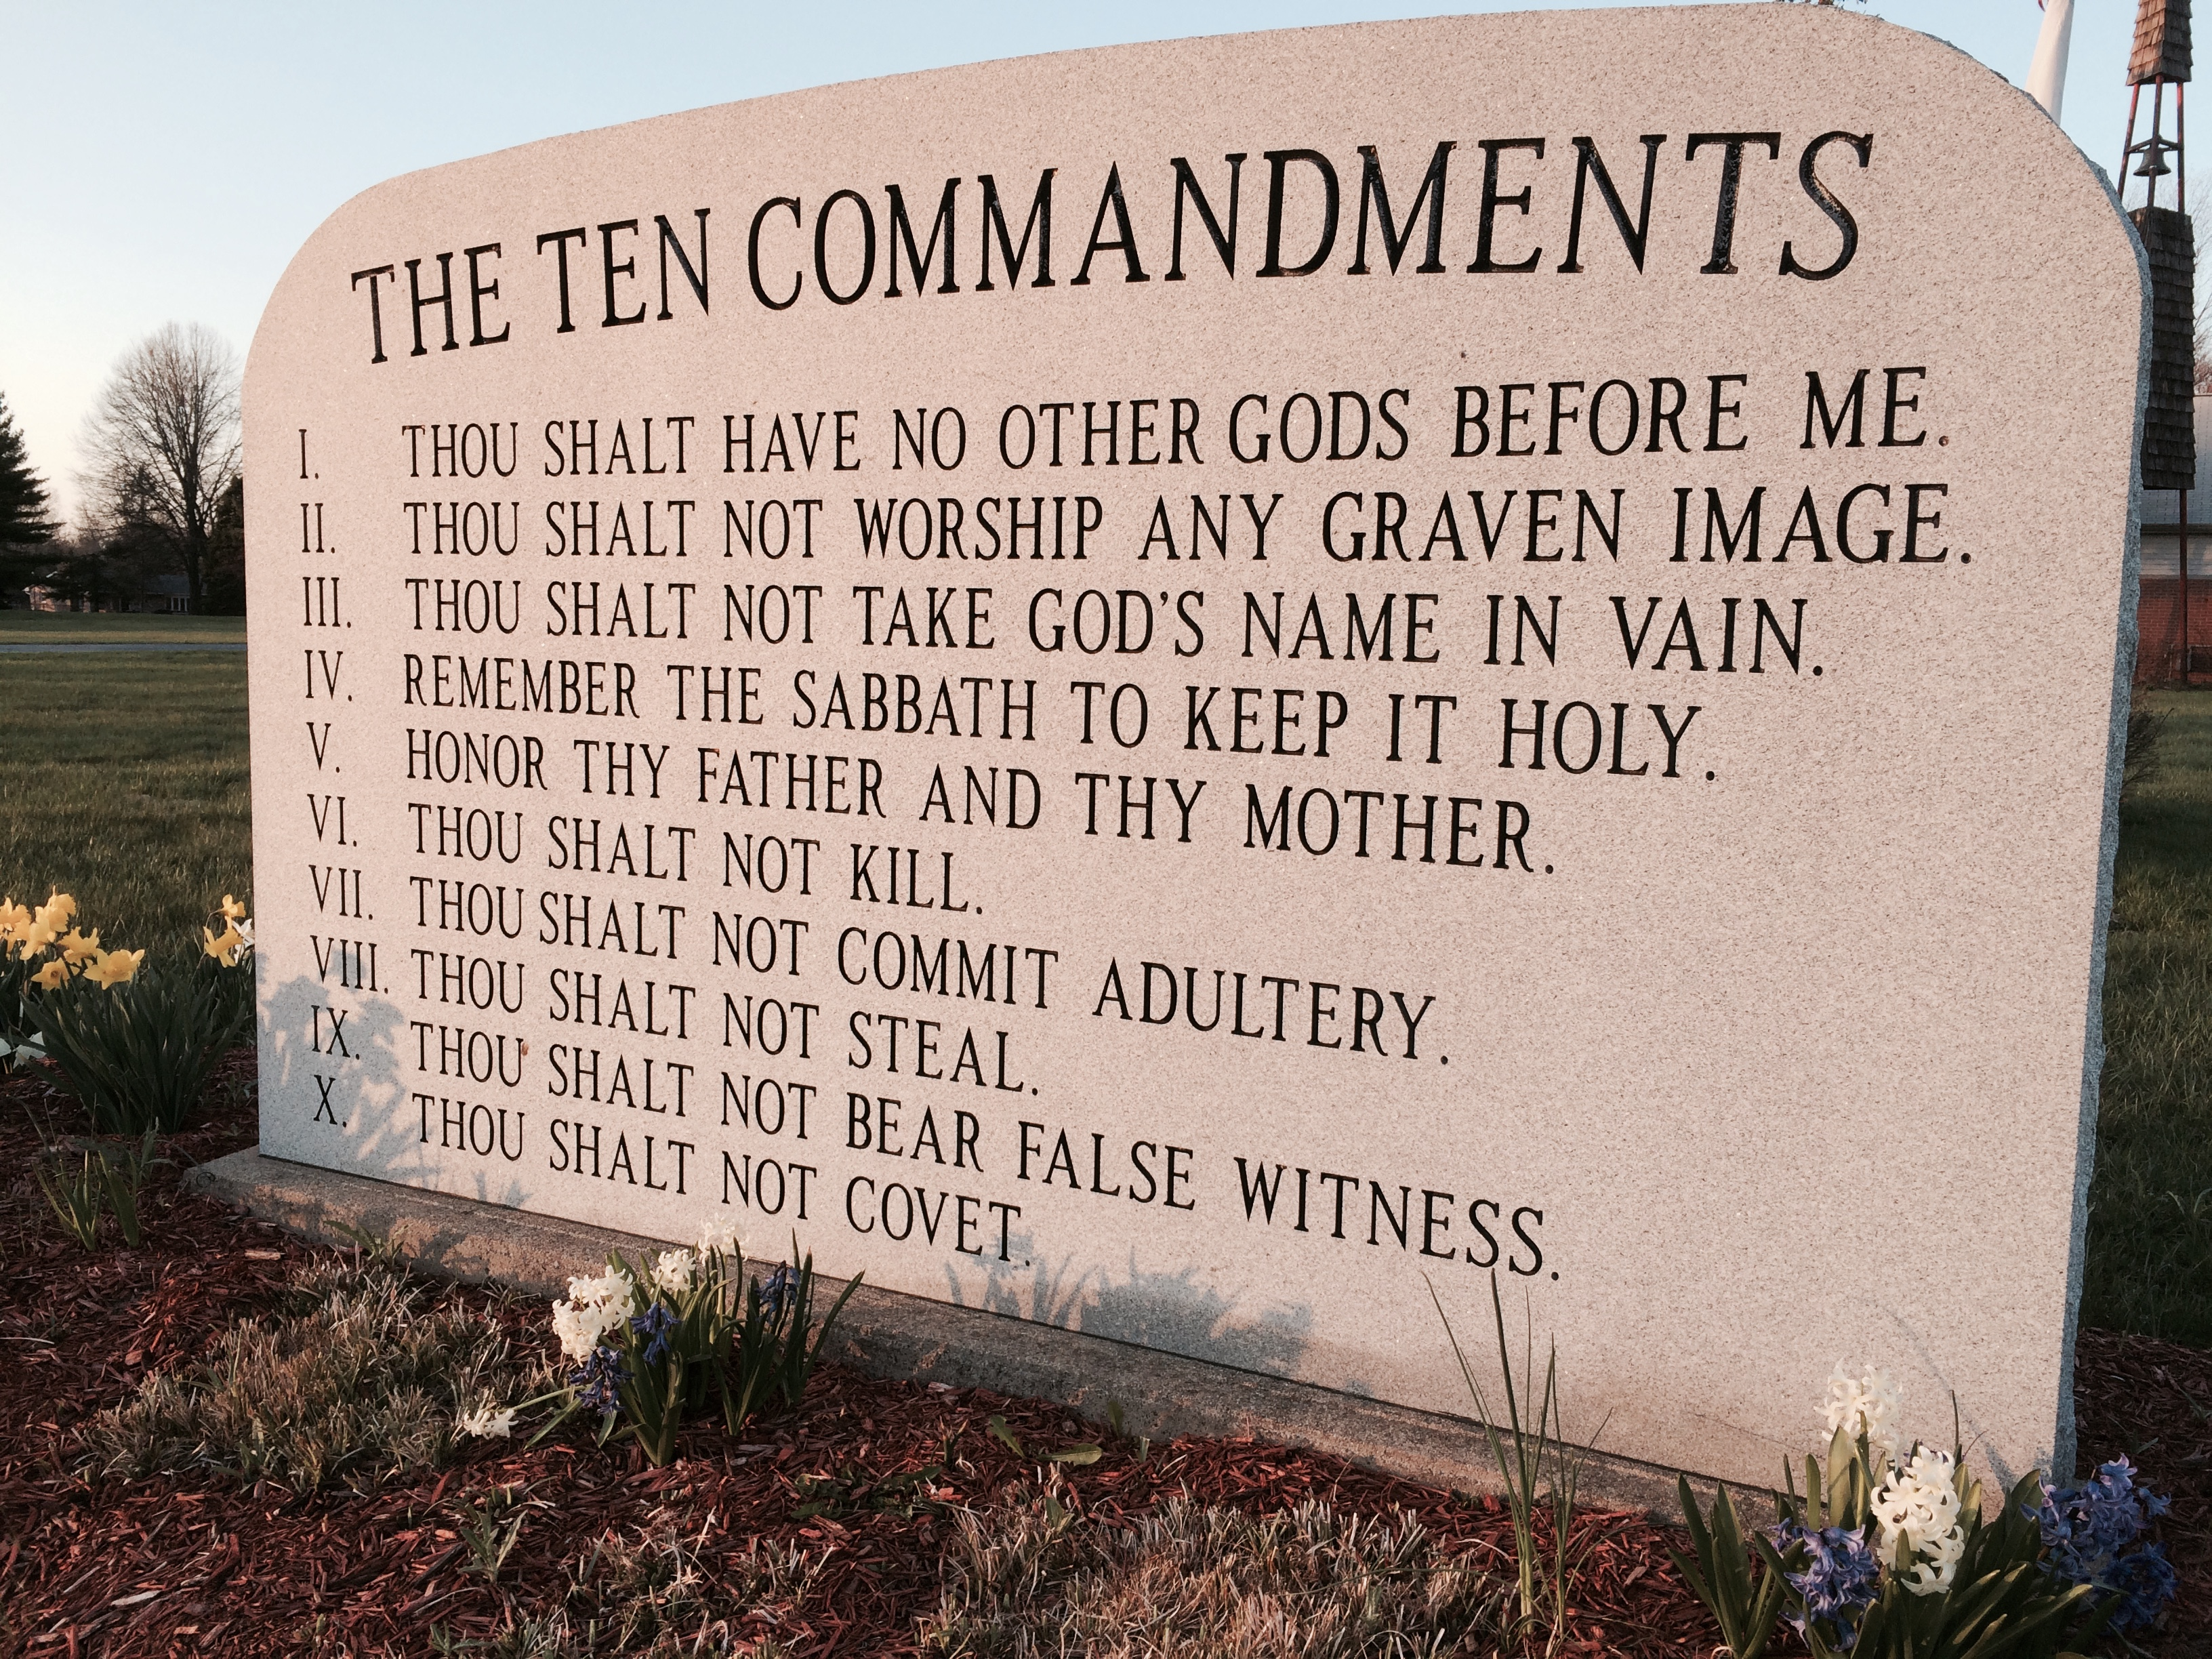 Ten Commandments List: Where in the Bible does it talk about